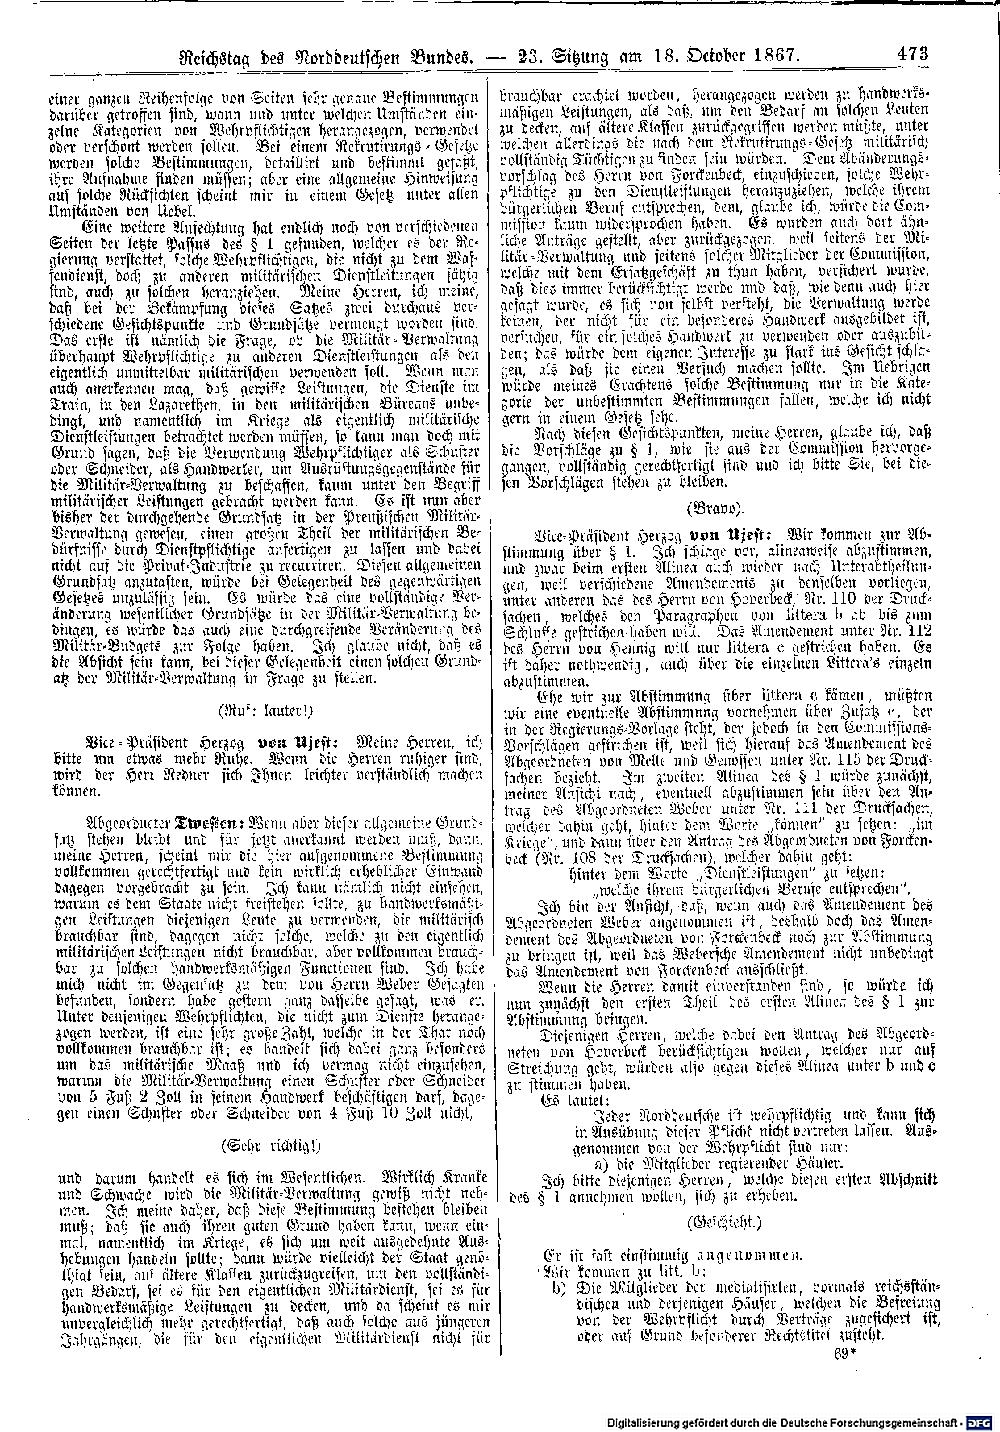 Scan of page 473